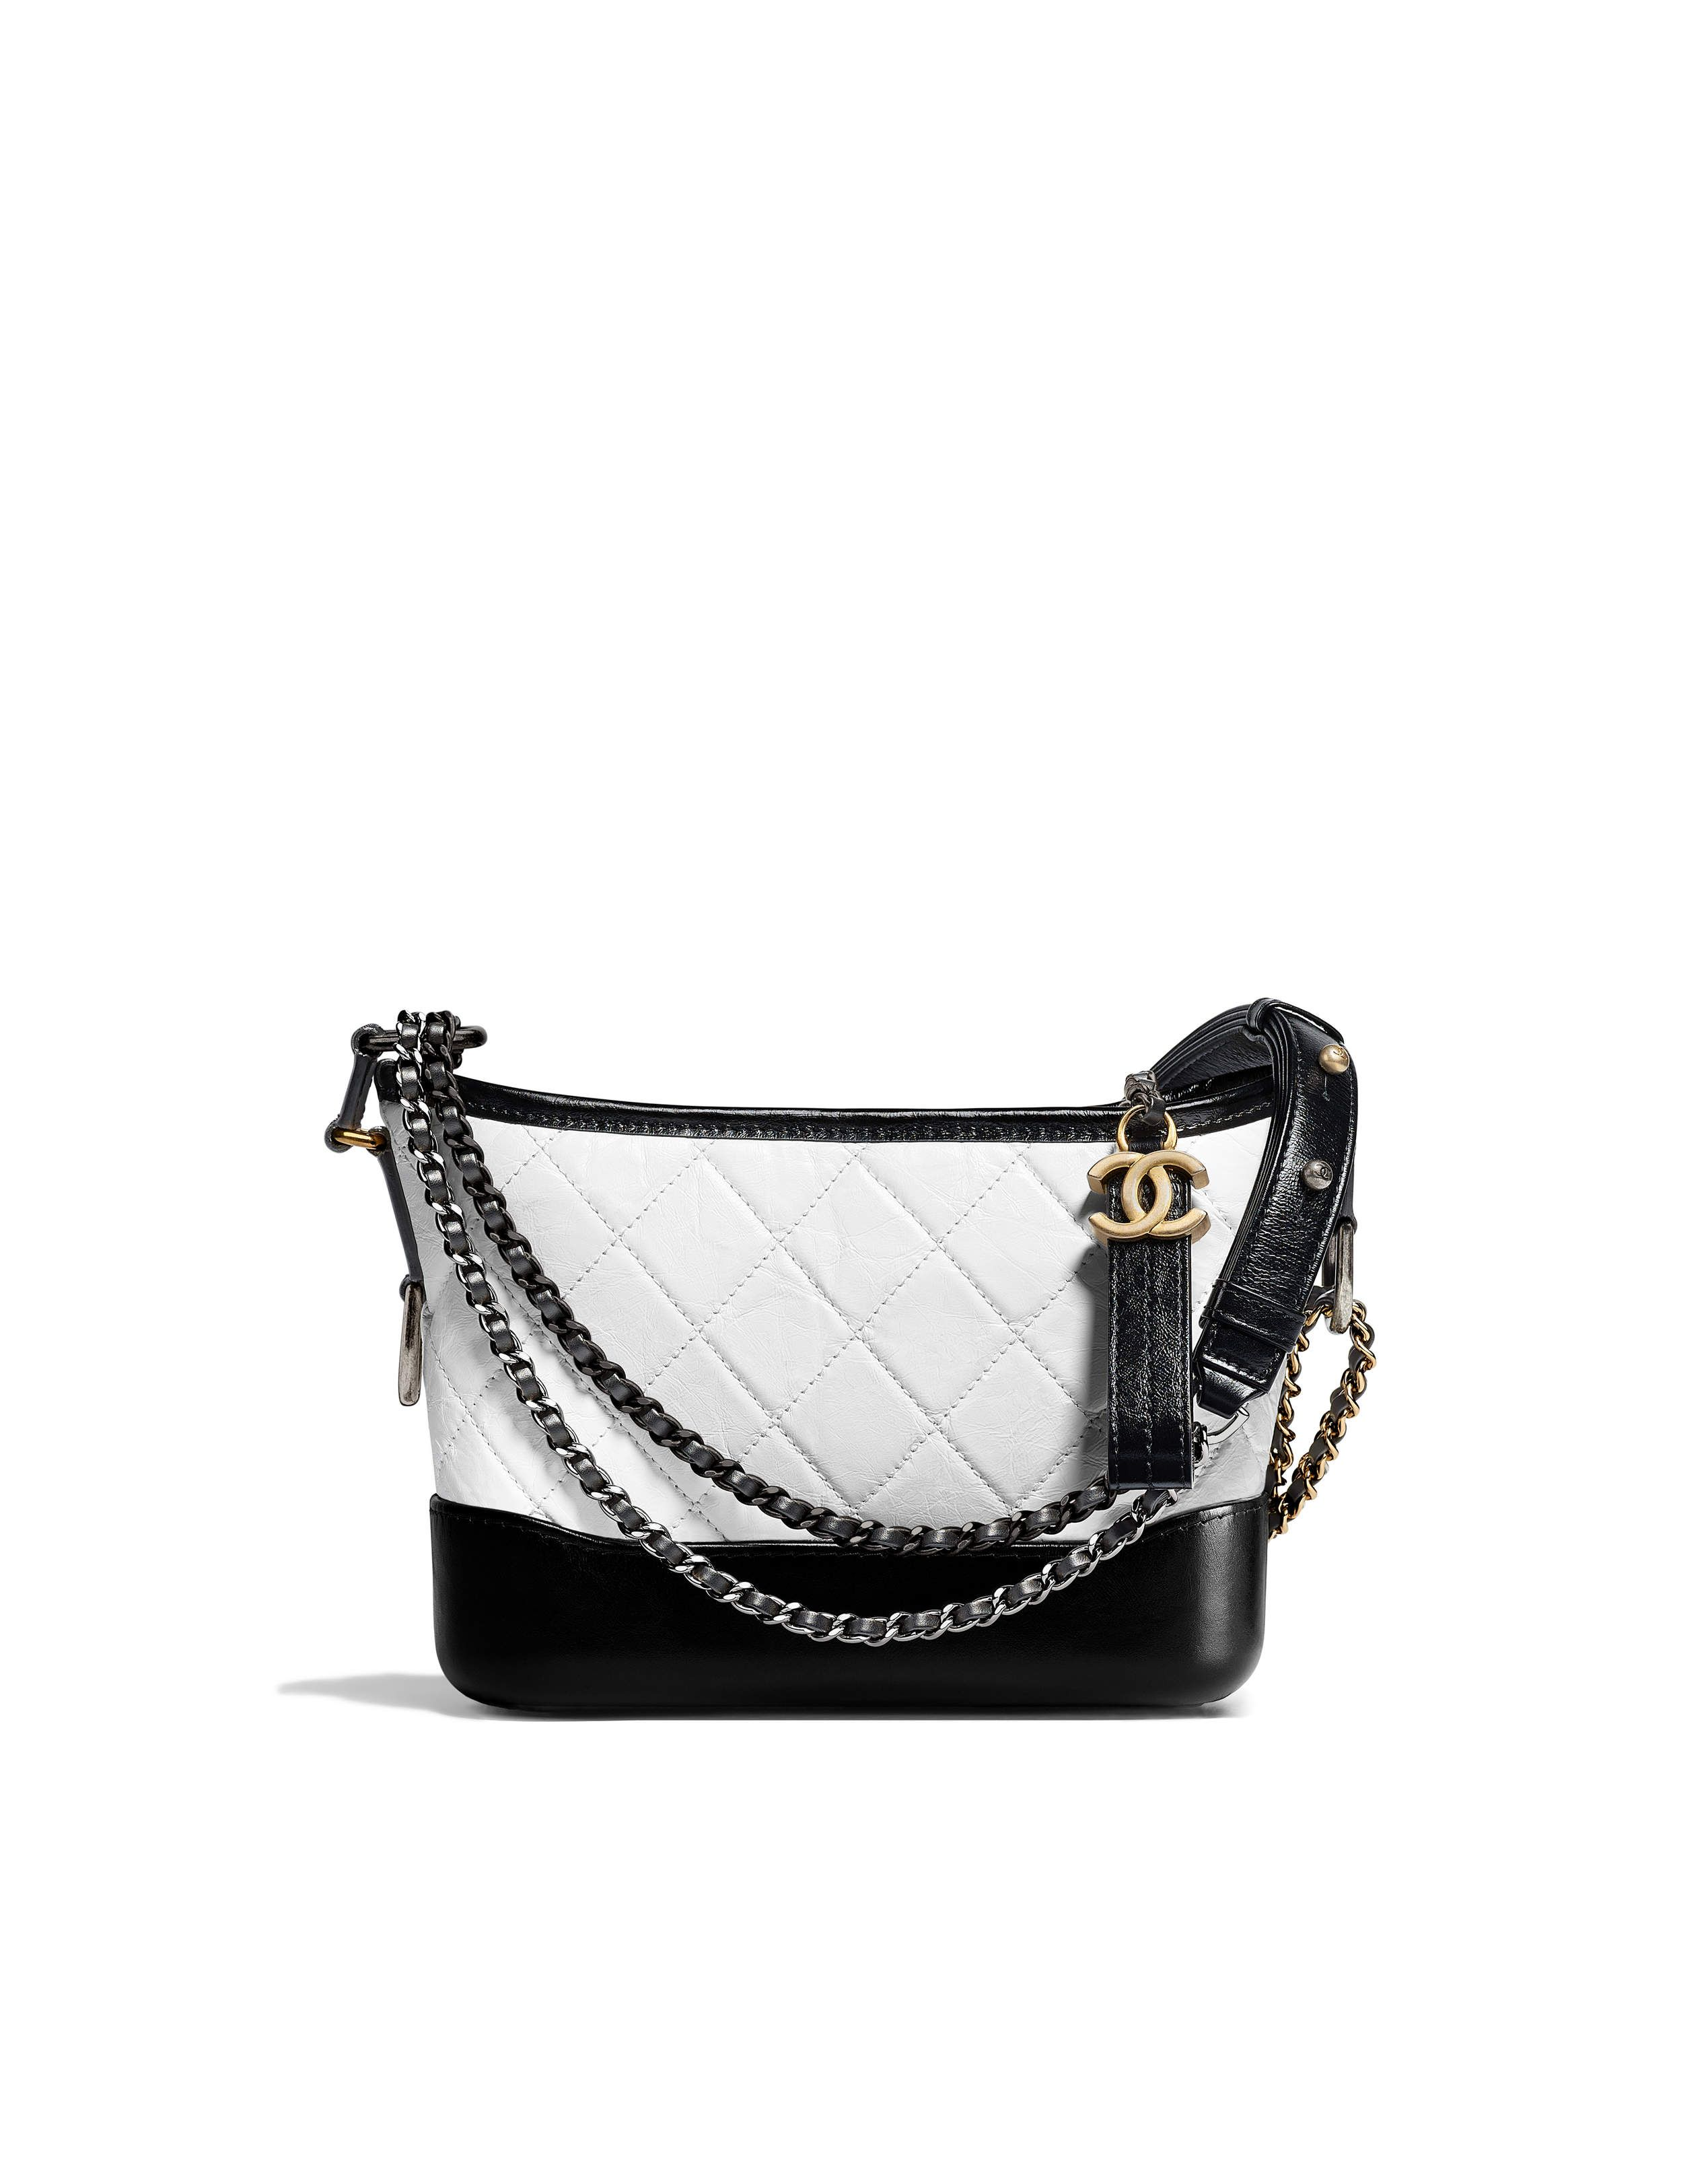 5a577584e1e073 Chanel - FW 2017/2018 | White & black aged calfskin Chanel's Gabrielle  small Hobo bag